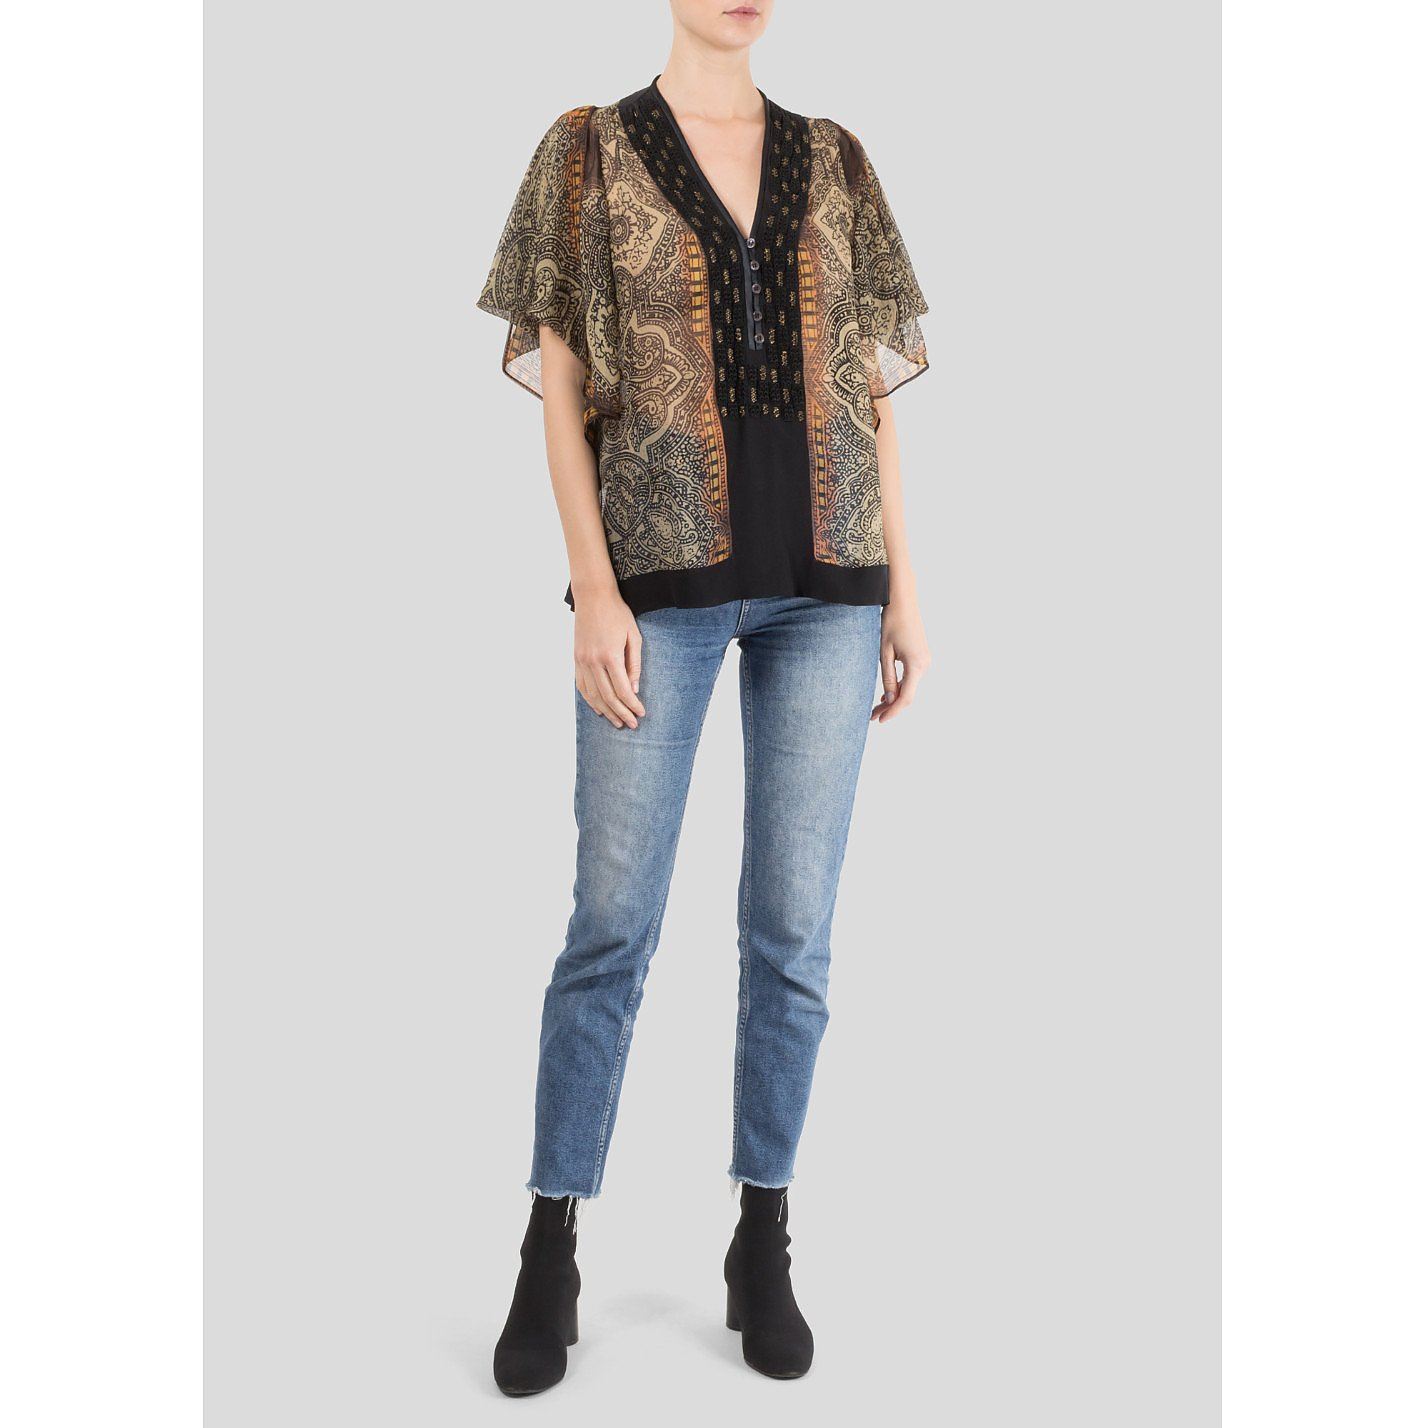 ETRO Hand Embroidered Silk Blouse